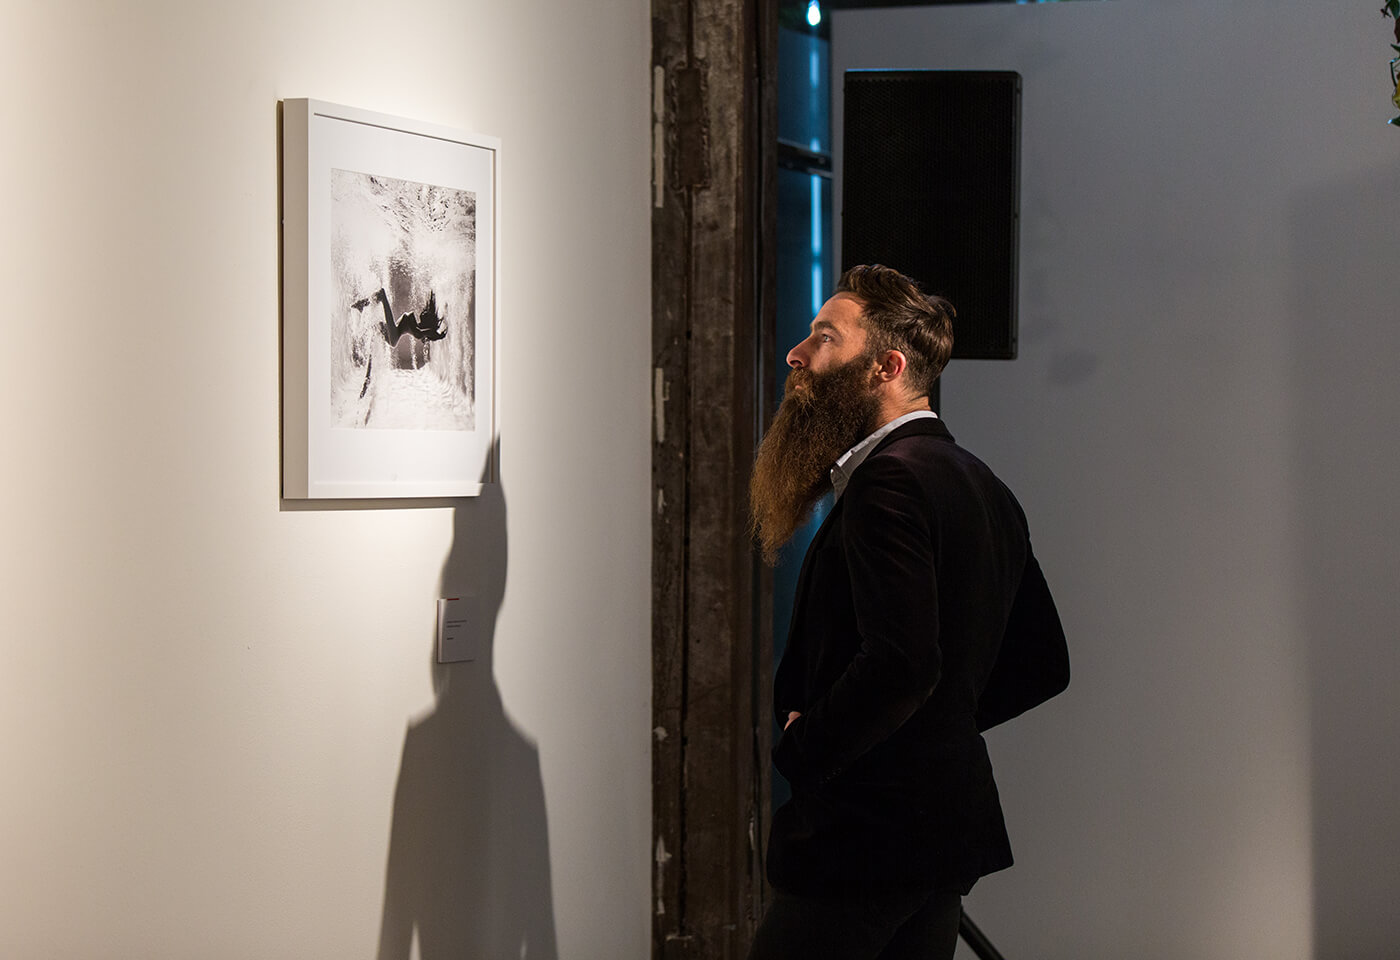 Image of patron looking at framed black and white image on wall